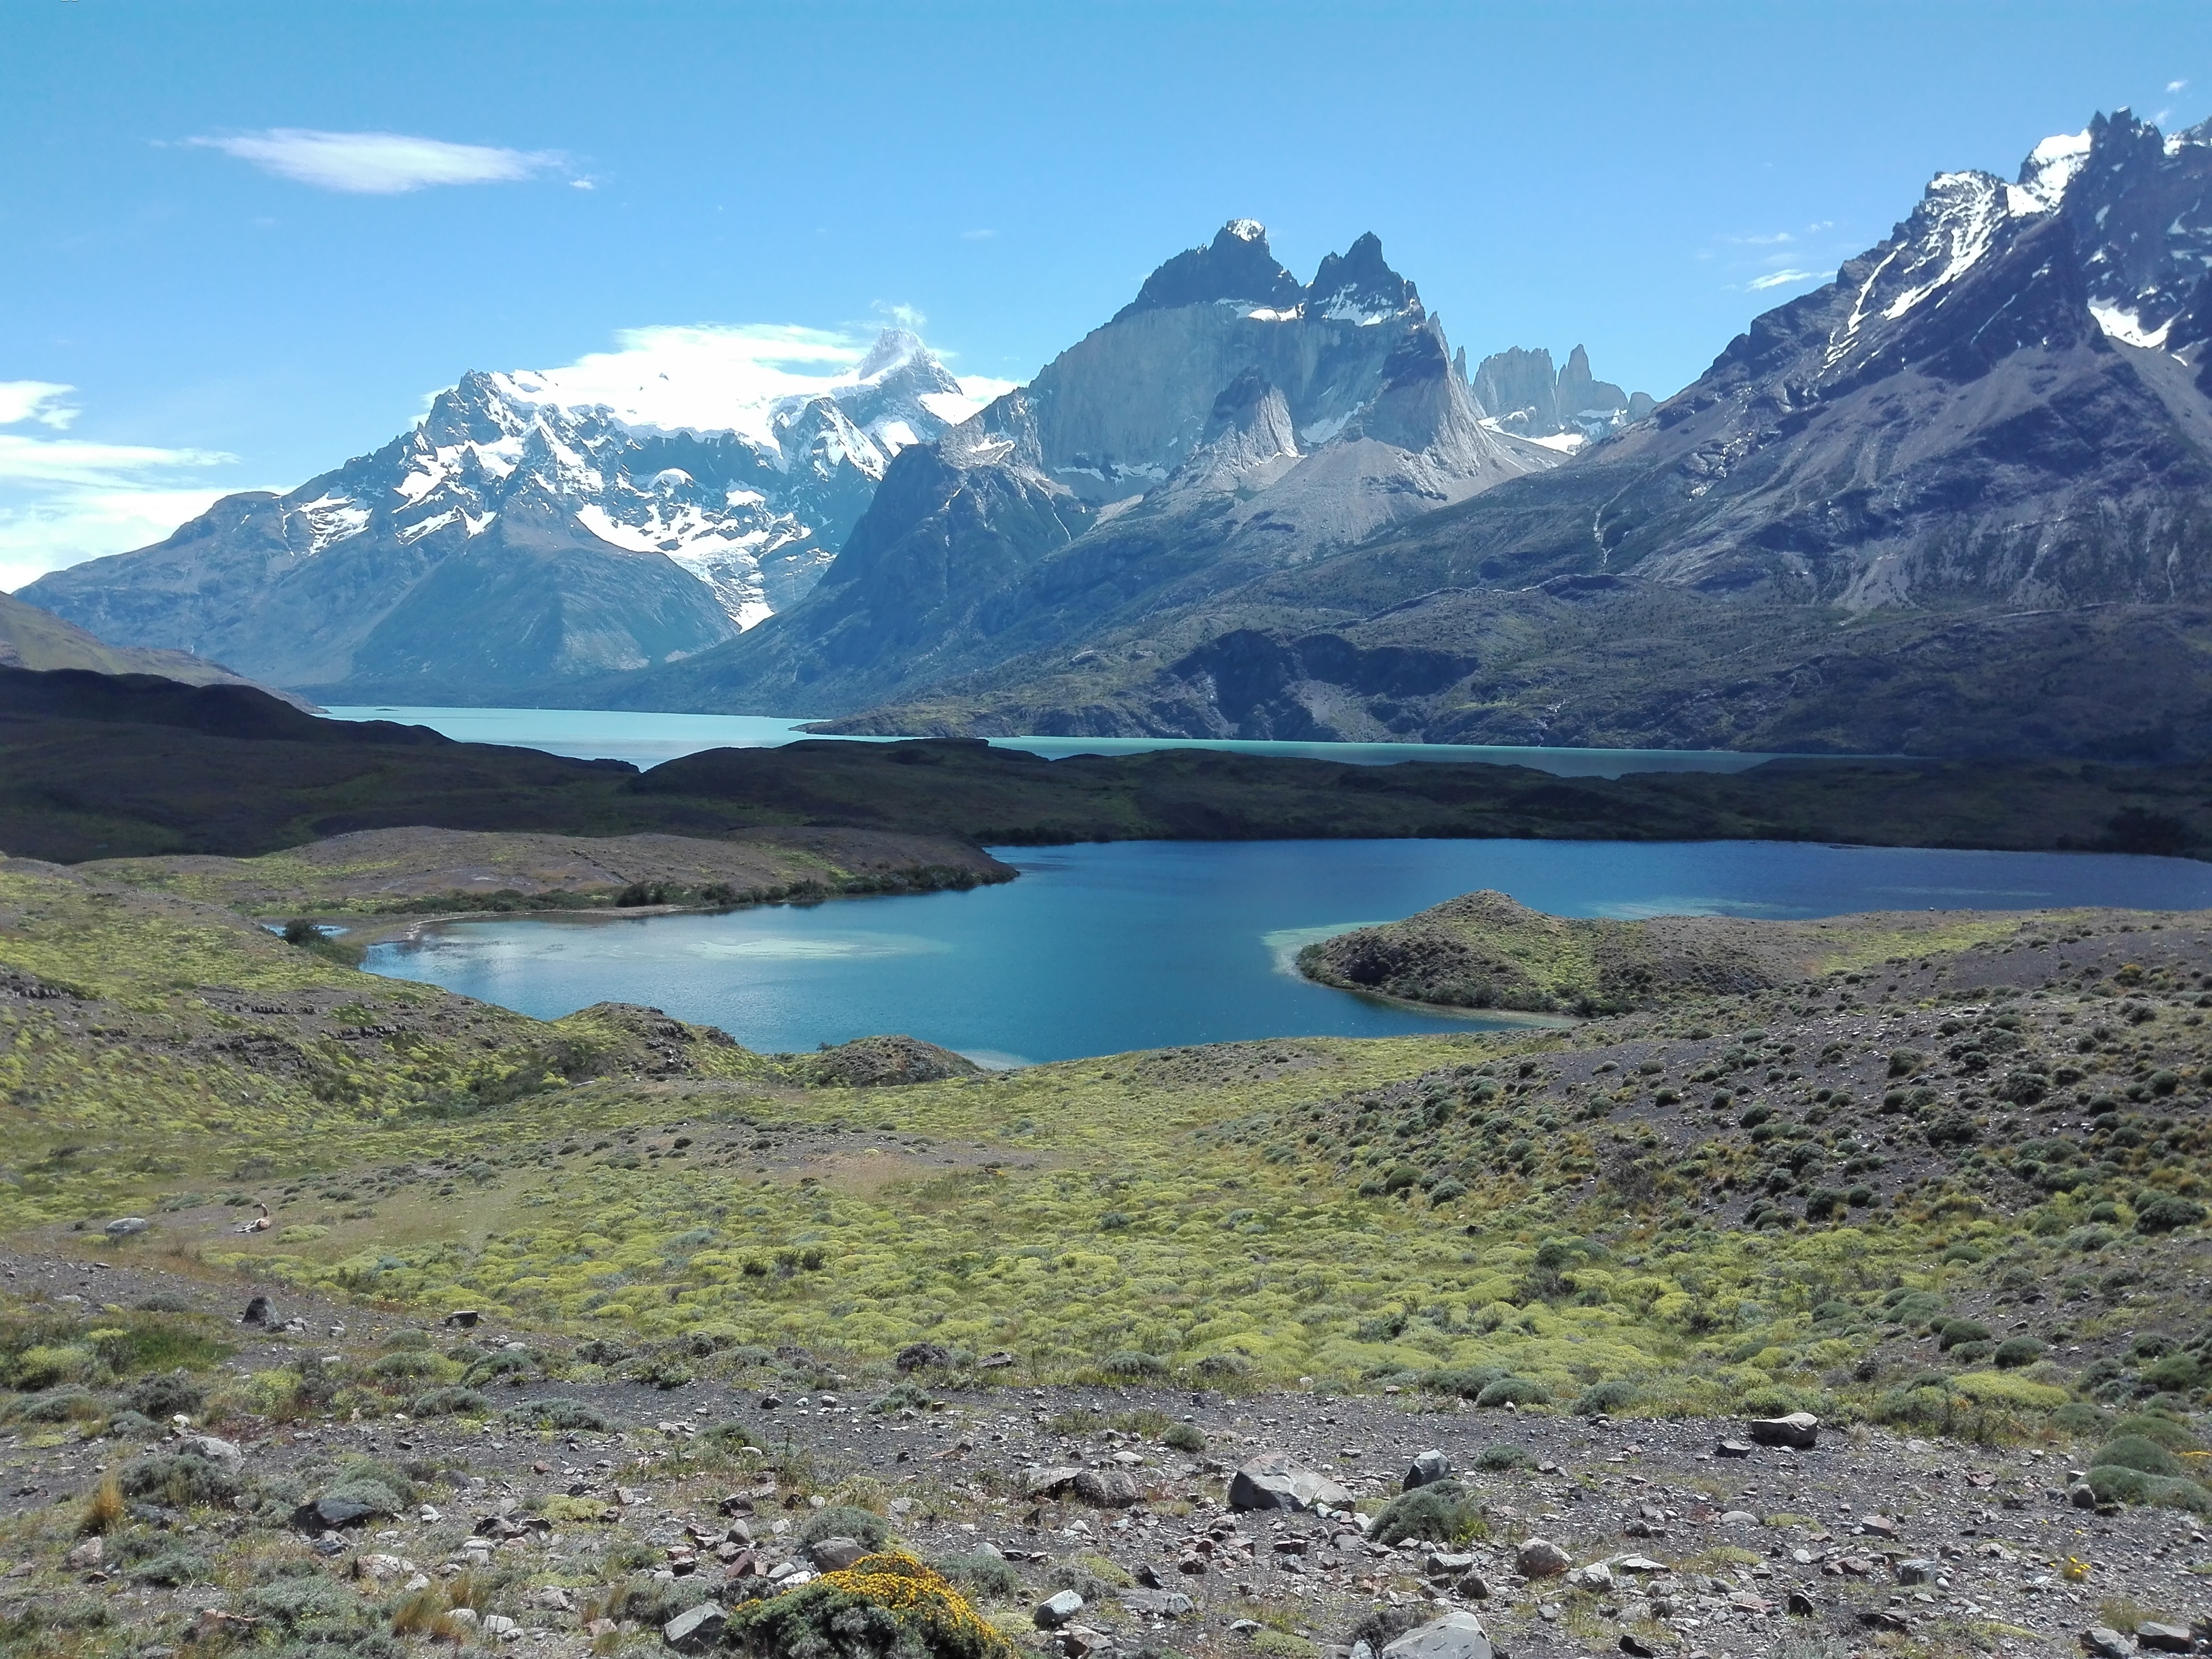 Chili Torres del Paine paysage